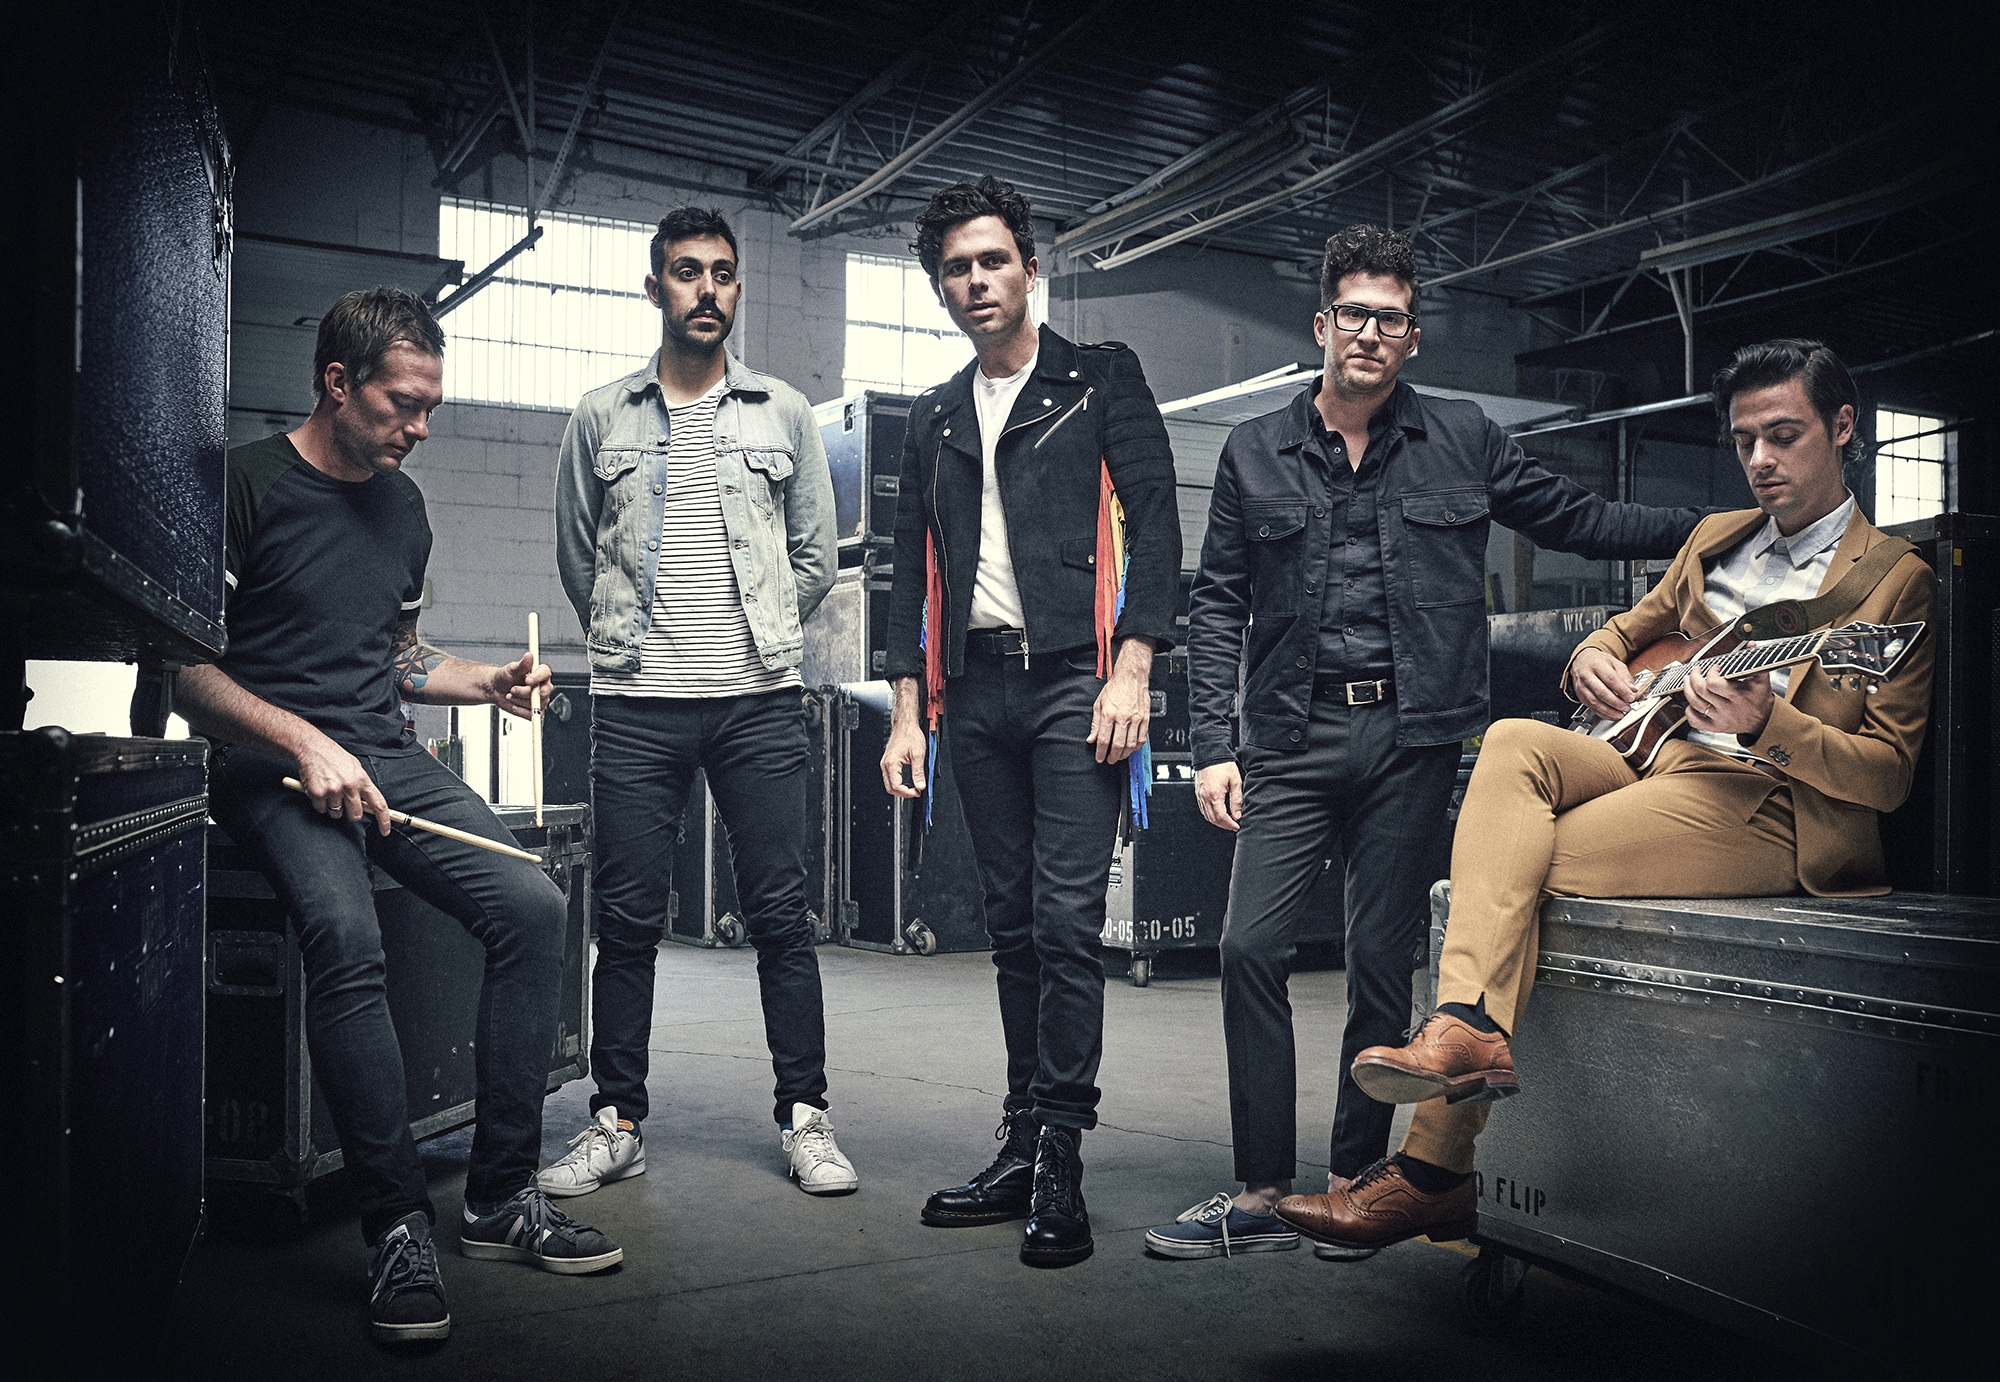 listen - american screams - arkells - Canada - indie music - new music - indie pop - music blog - indie blog - wolf in a suit - wolfinasuit - wolf in a suit blog - wolf in a suit music blog